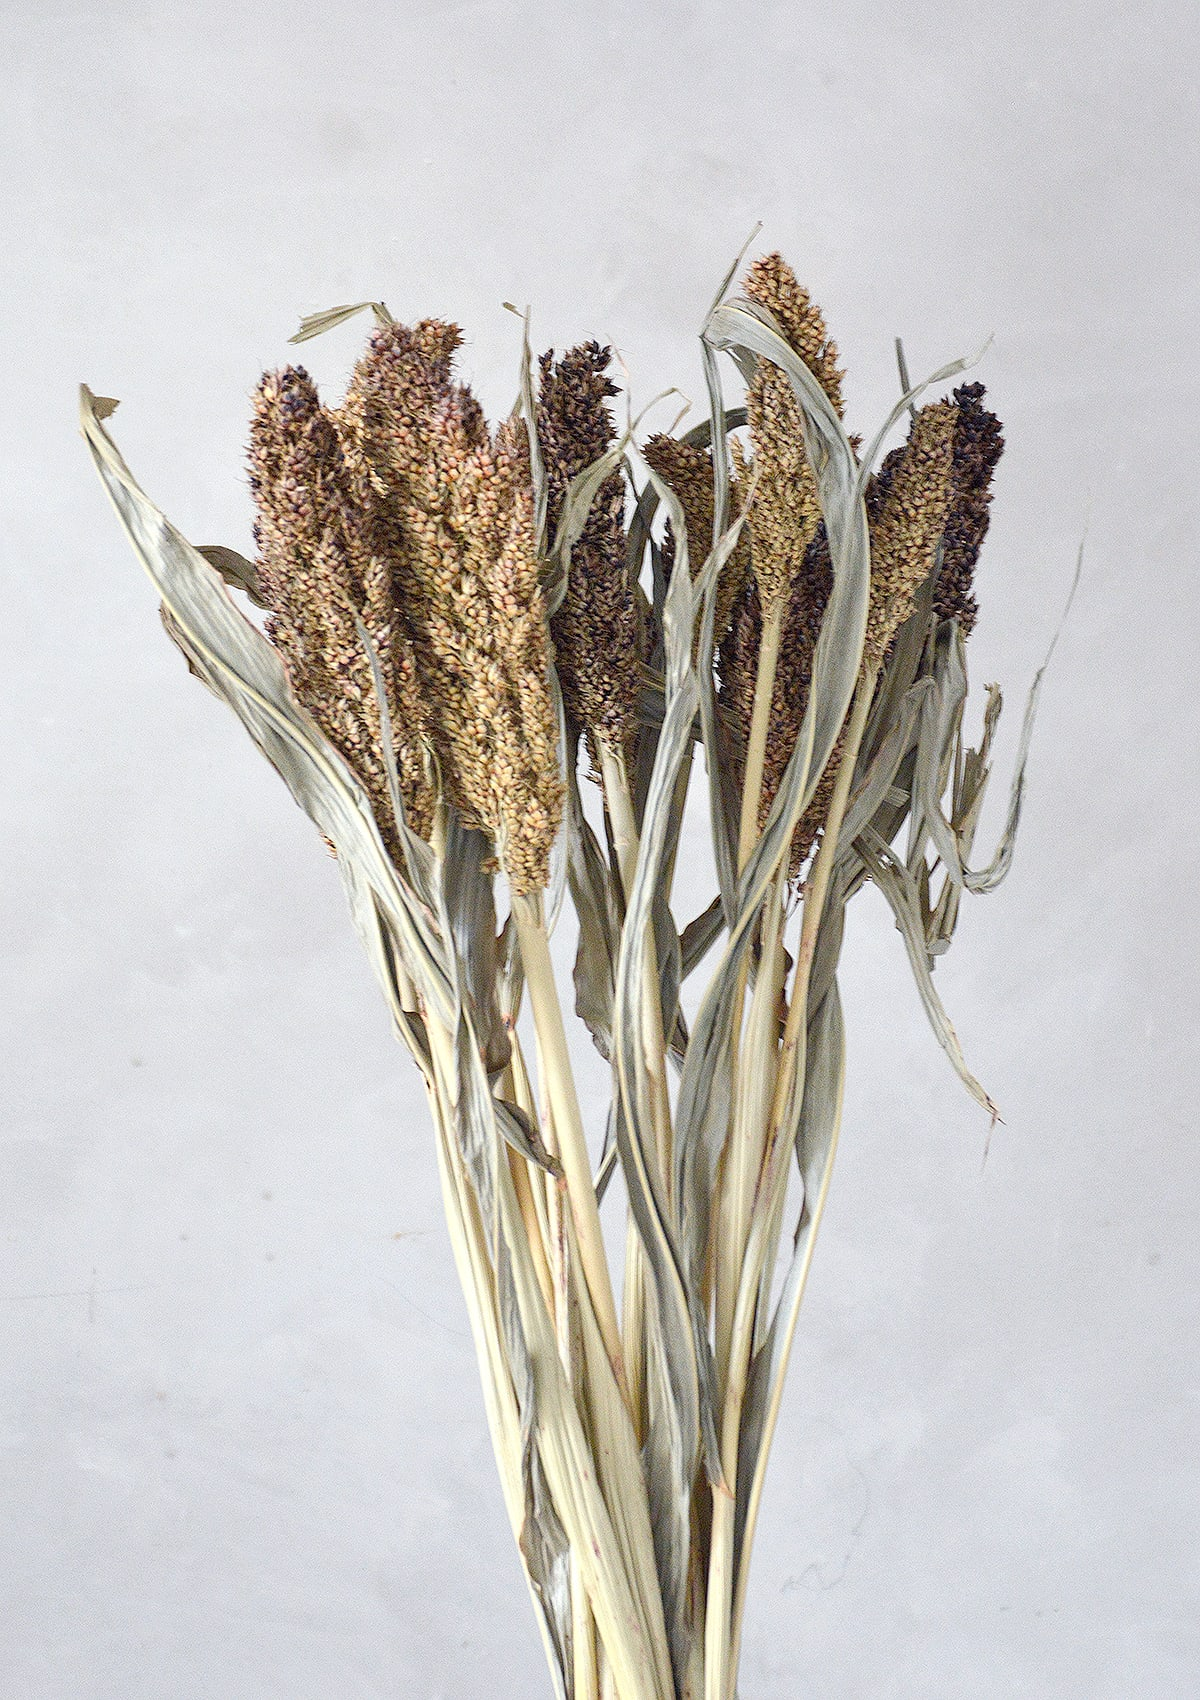 Little Deer Dried Natural Sorghum Grass / Seed Heads